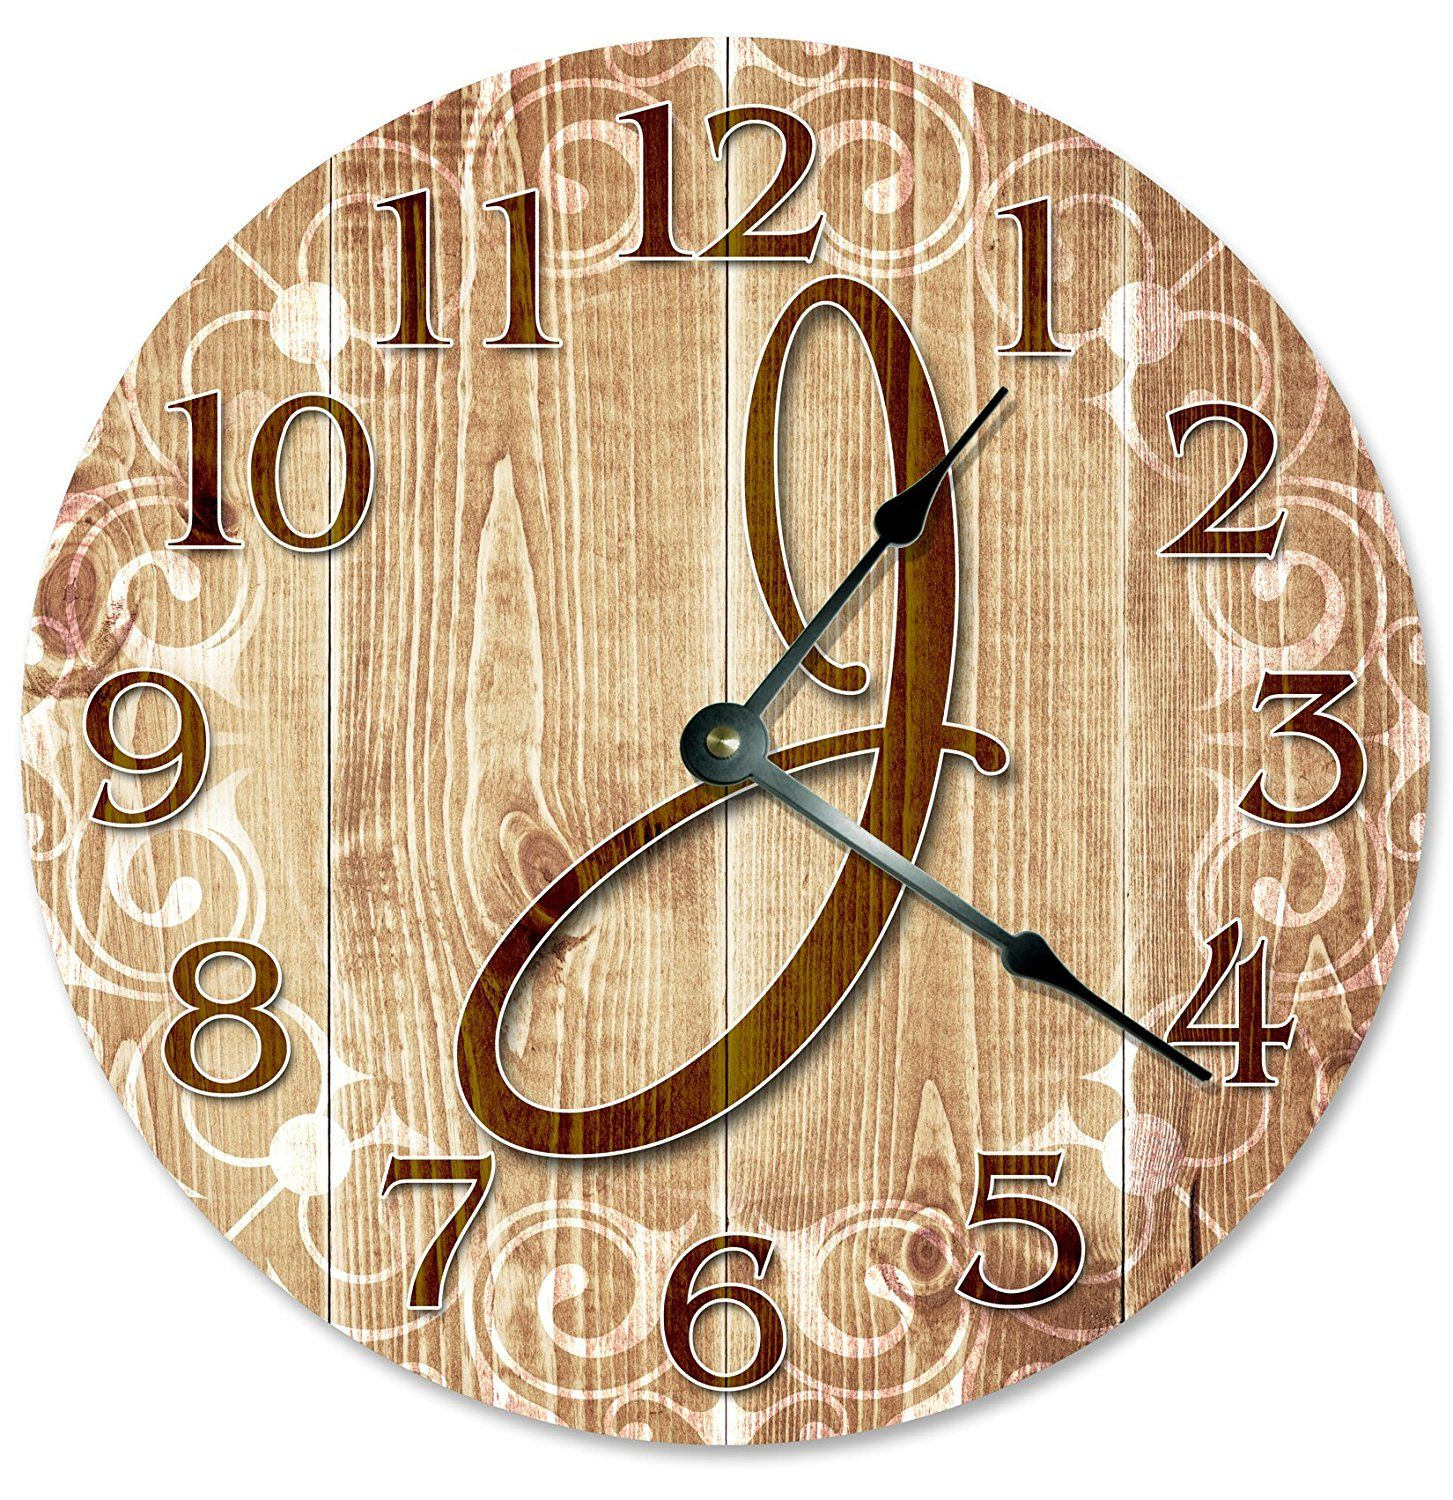 LETTER J MONOGRAM CLOCK Decorative Round Wall Clock Home Decor Large ...